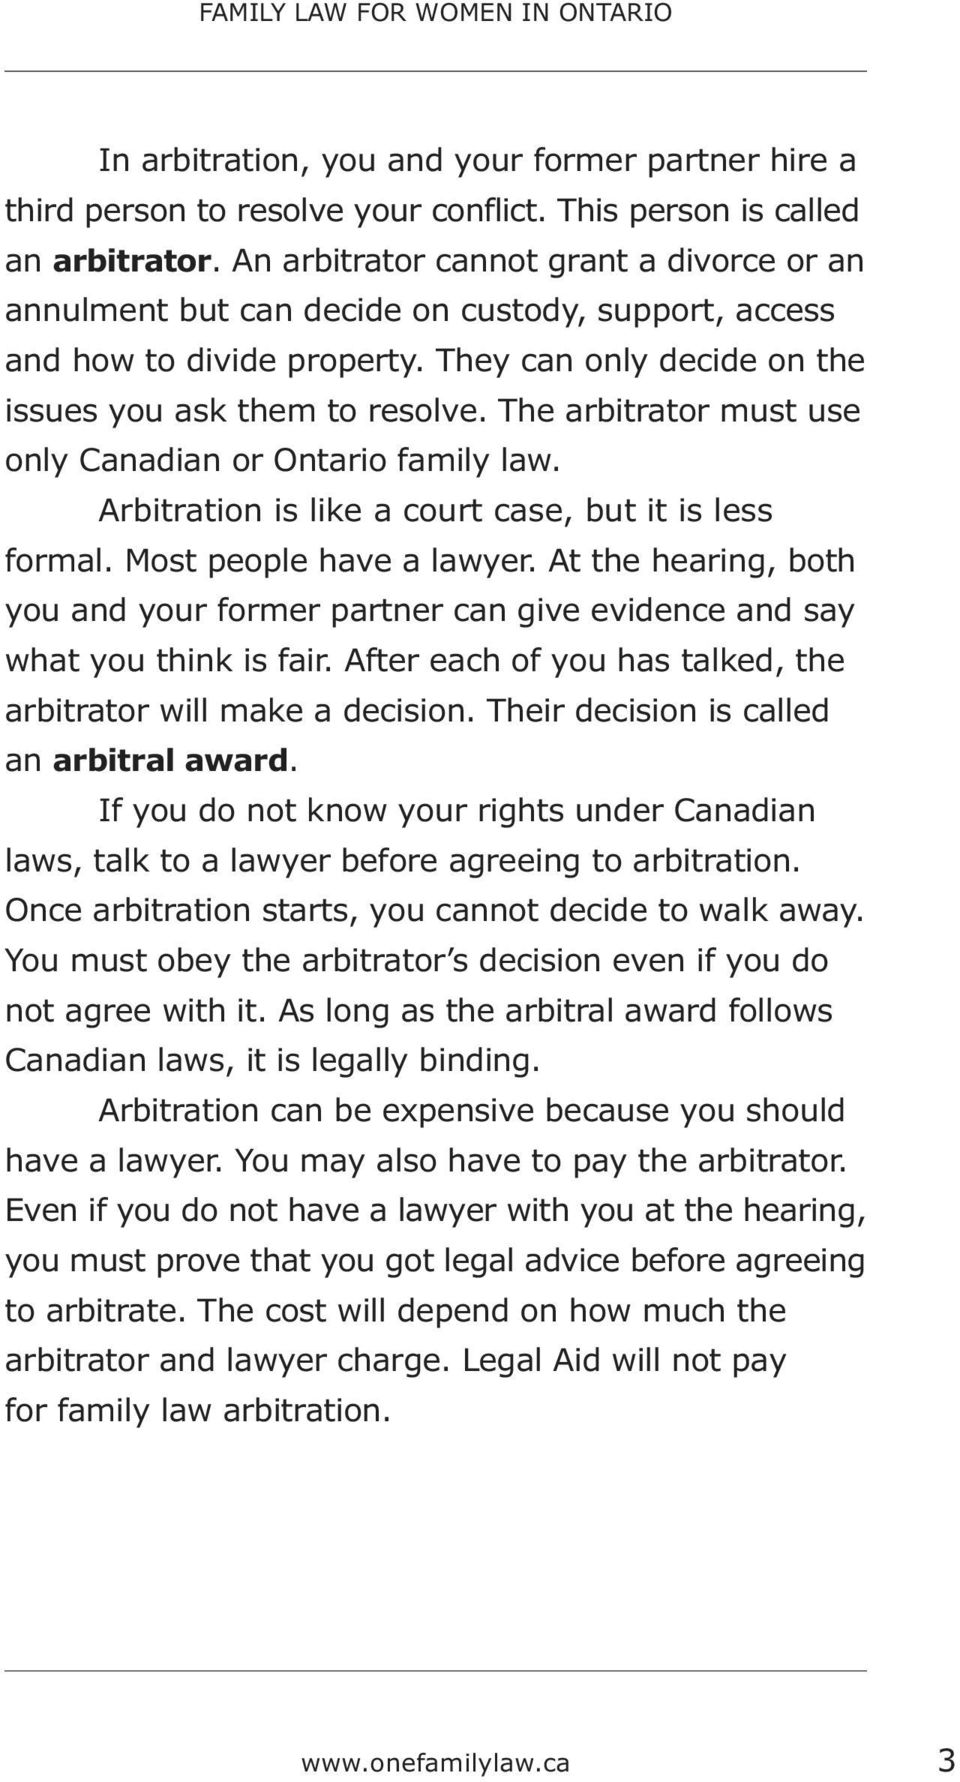 The arbitrator must use only Canadian or Ontario family law. Arbitration is like a court case, but it is less formal. Most people have a lawyer.